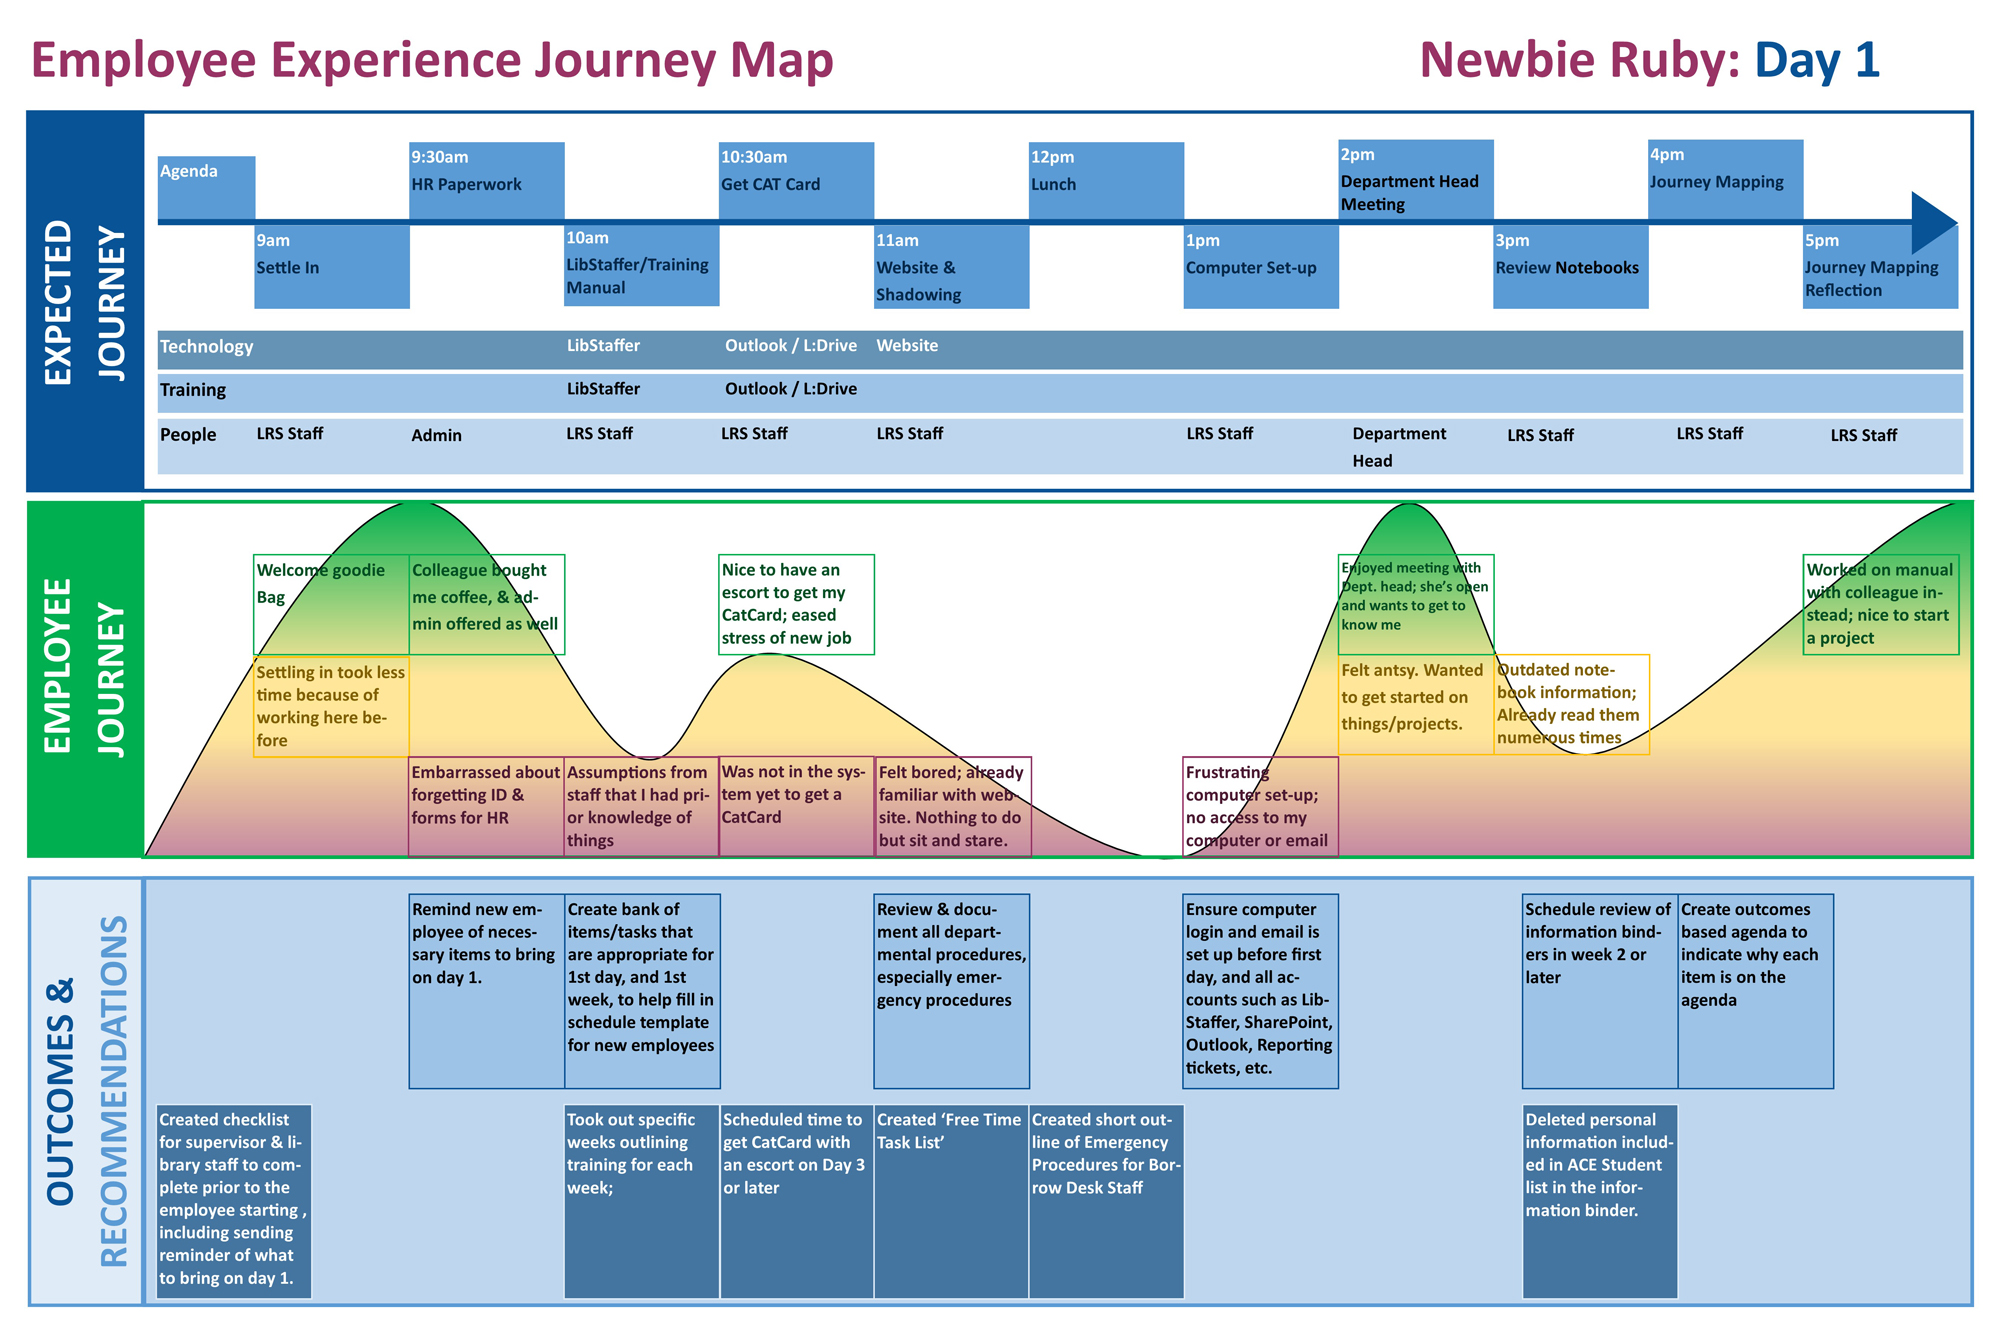 Figure 4. Employee experience journey map for Newbie Ruby's first day.